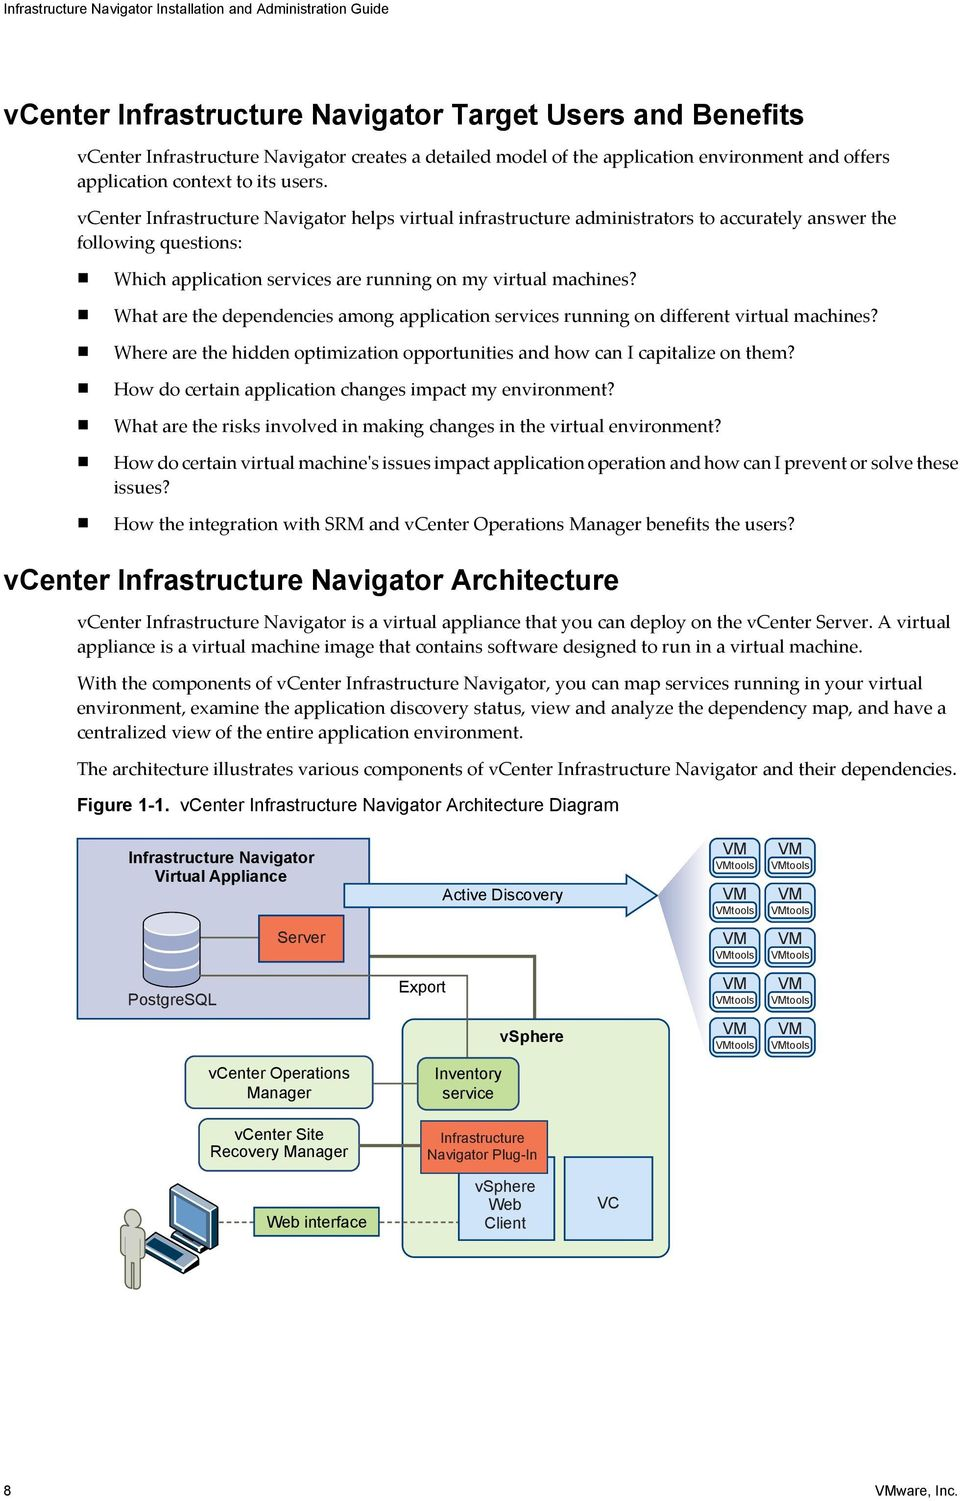 vcenter Infrastructure Navigator helps virtual infrastructure administrators to accurately answer the following questions: Which application services are running on my virtual machines?